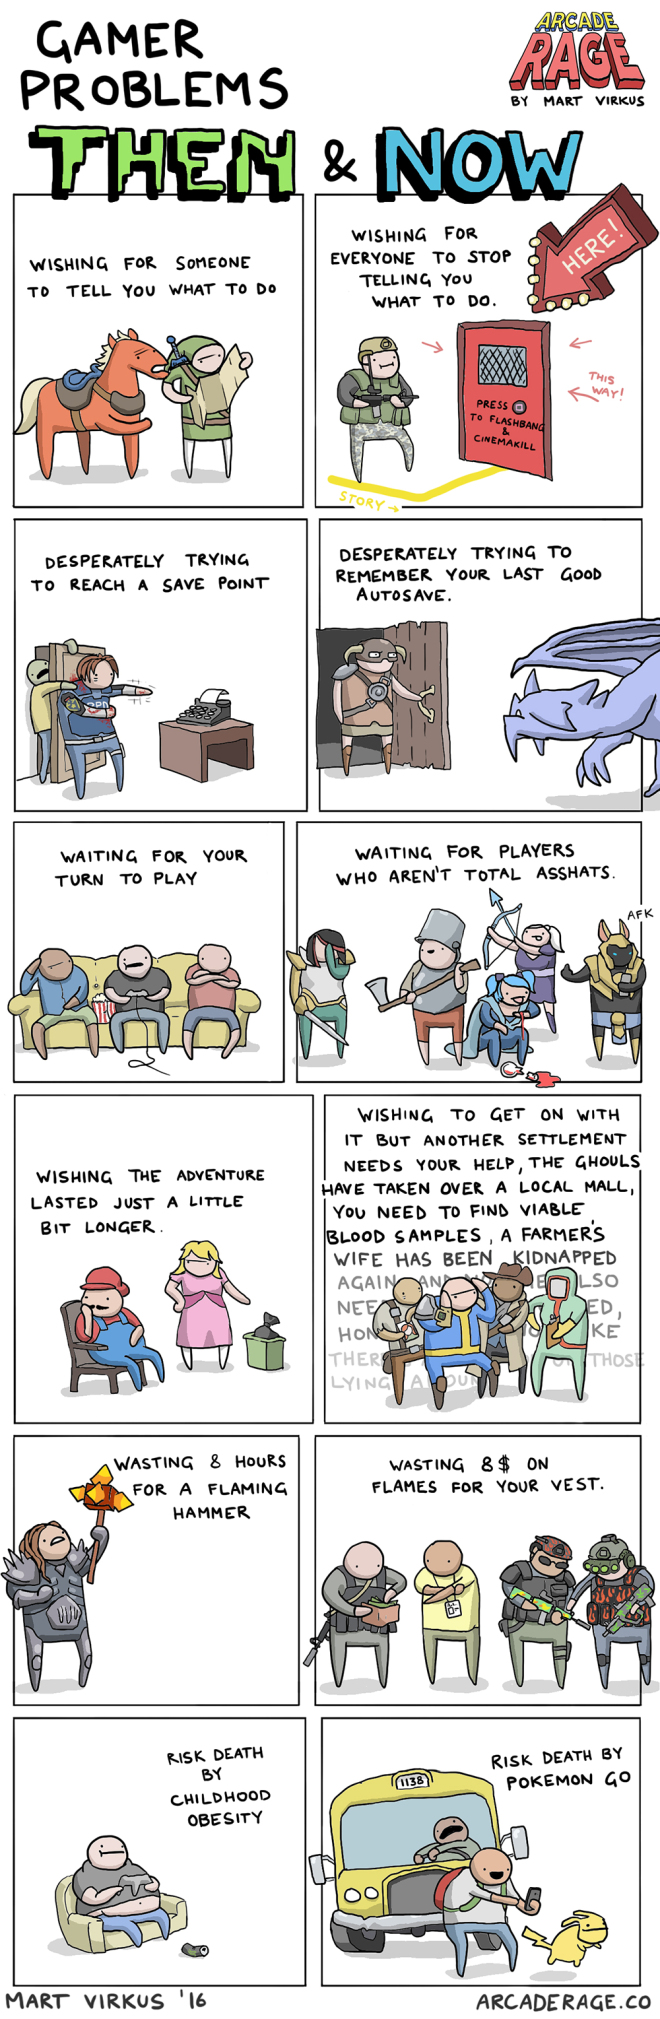 A webcomic on gaming by Arcaderage.co